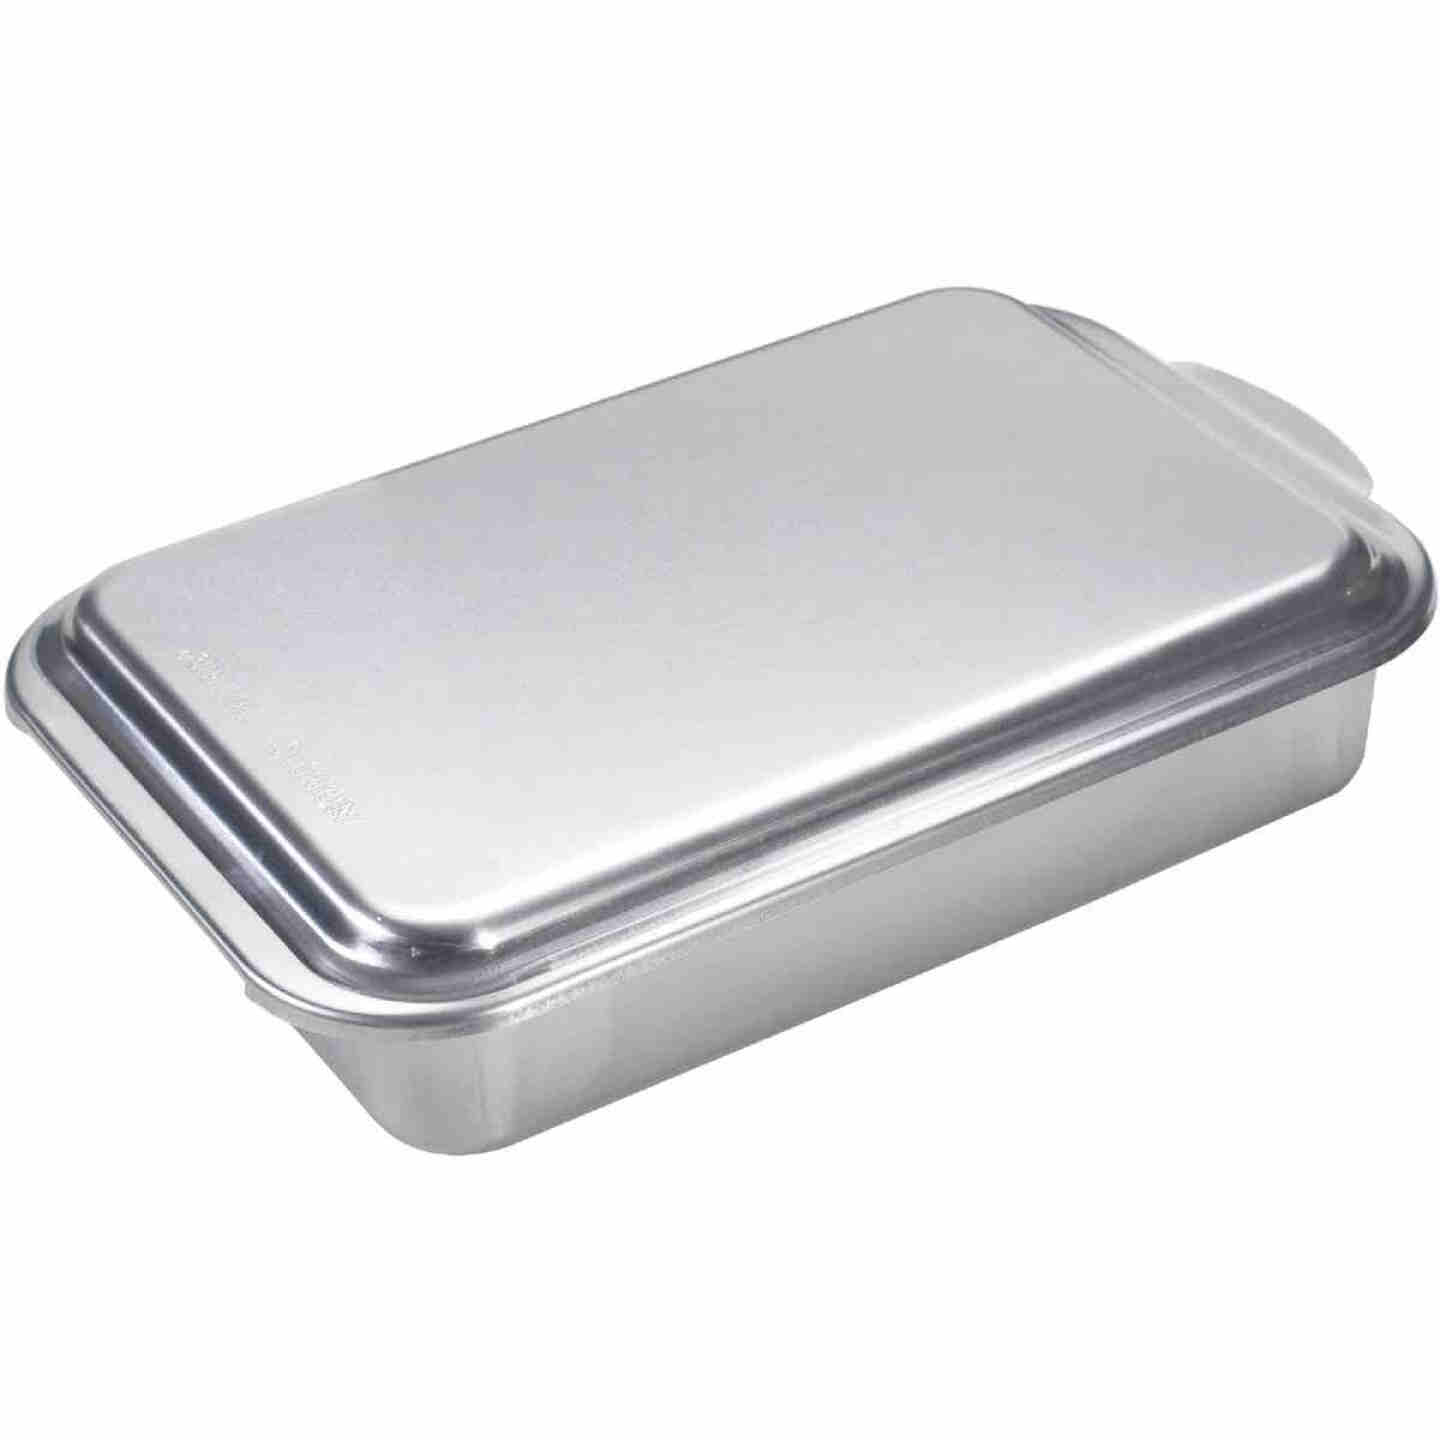 NordicWare 9 In. x 13 In. Aluminum Cake Pan with Lid Image 1